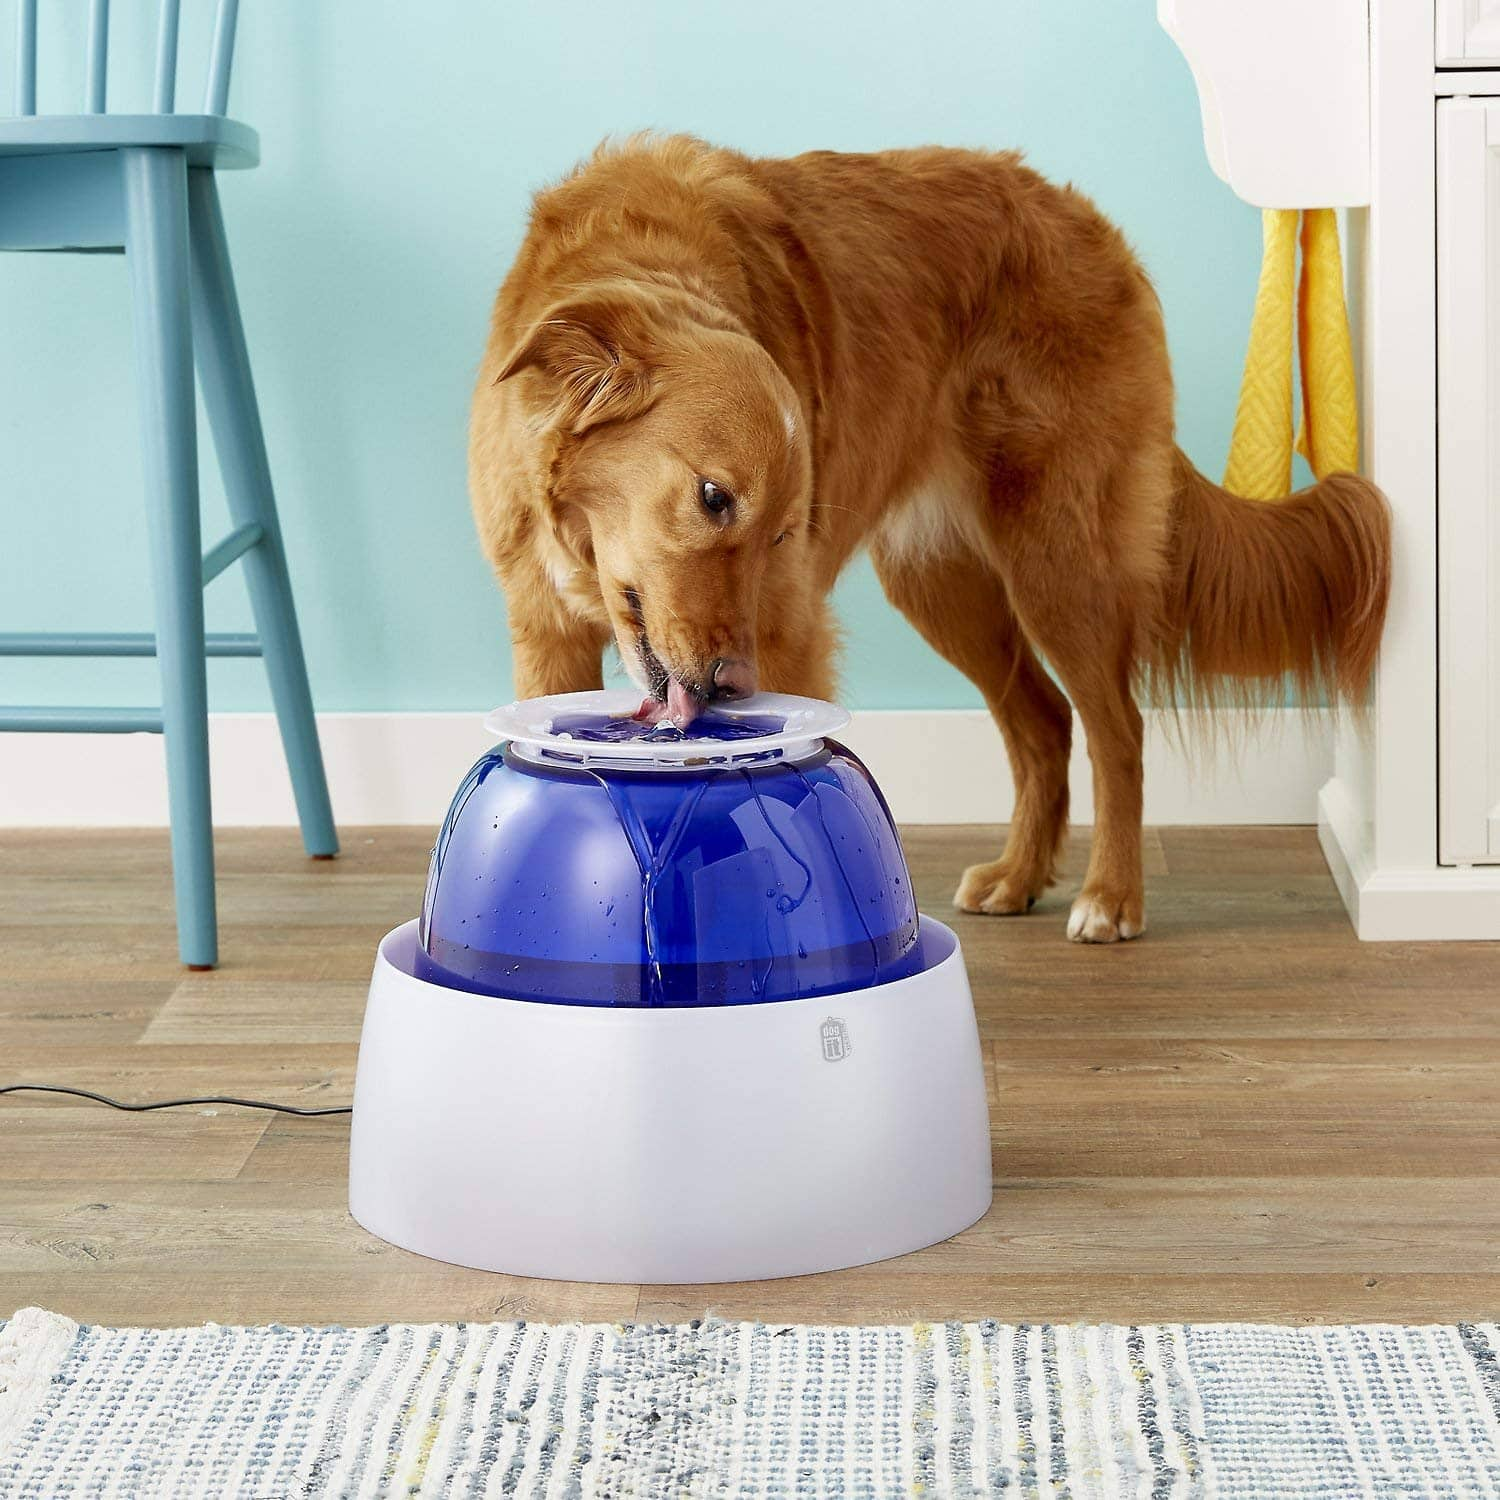 Dogit Design Fresh & Clear Large Dog Filtered Drinking Fountain $11 + Free Shipping $49+